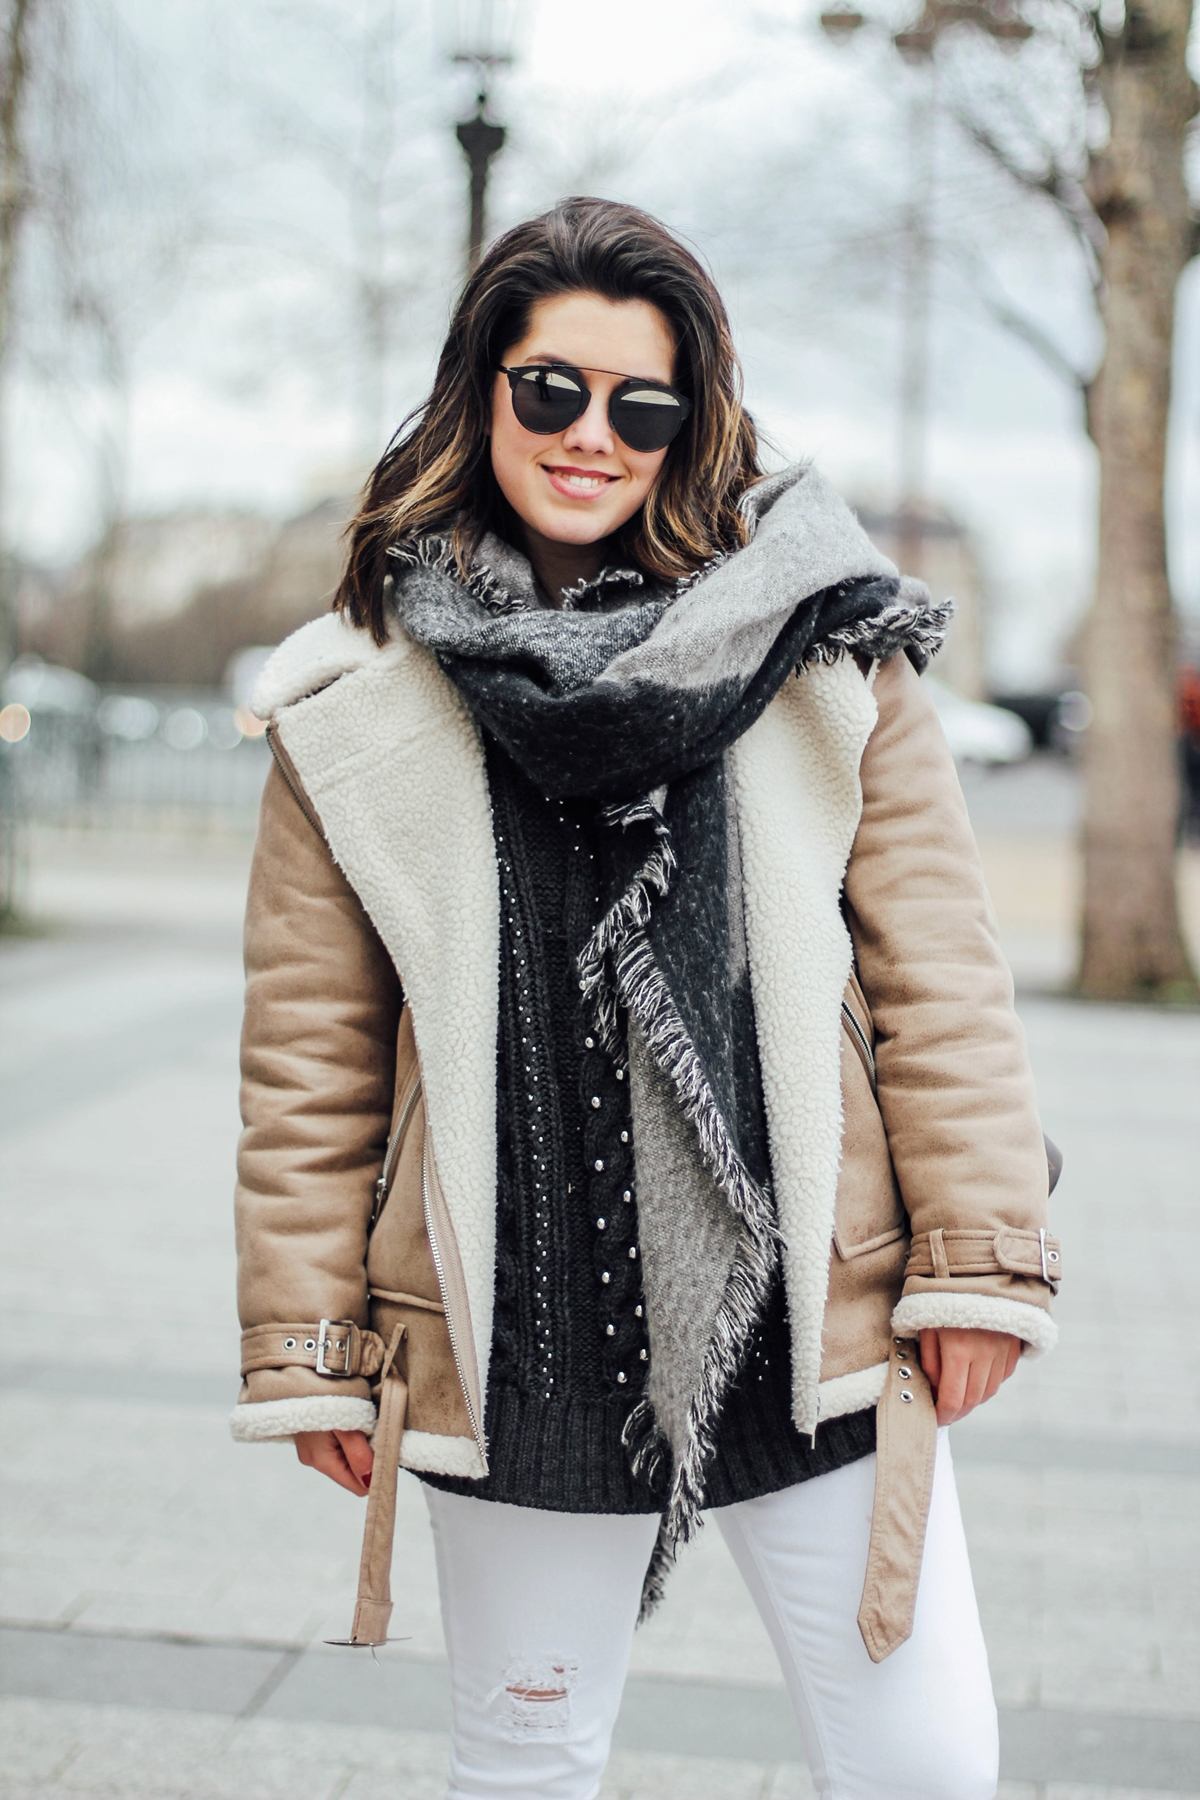 shearling-jacket-beige-isabel-marant-sneakers-streetstyle borreguillo